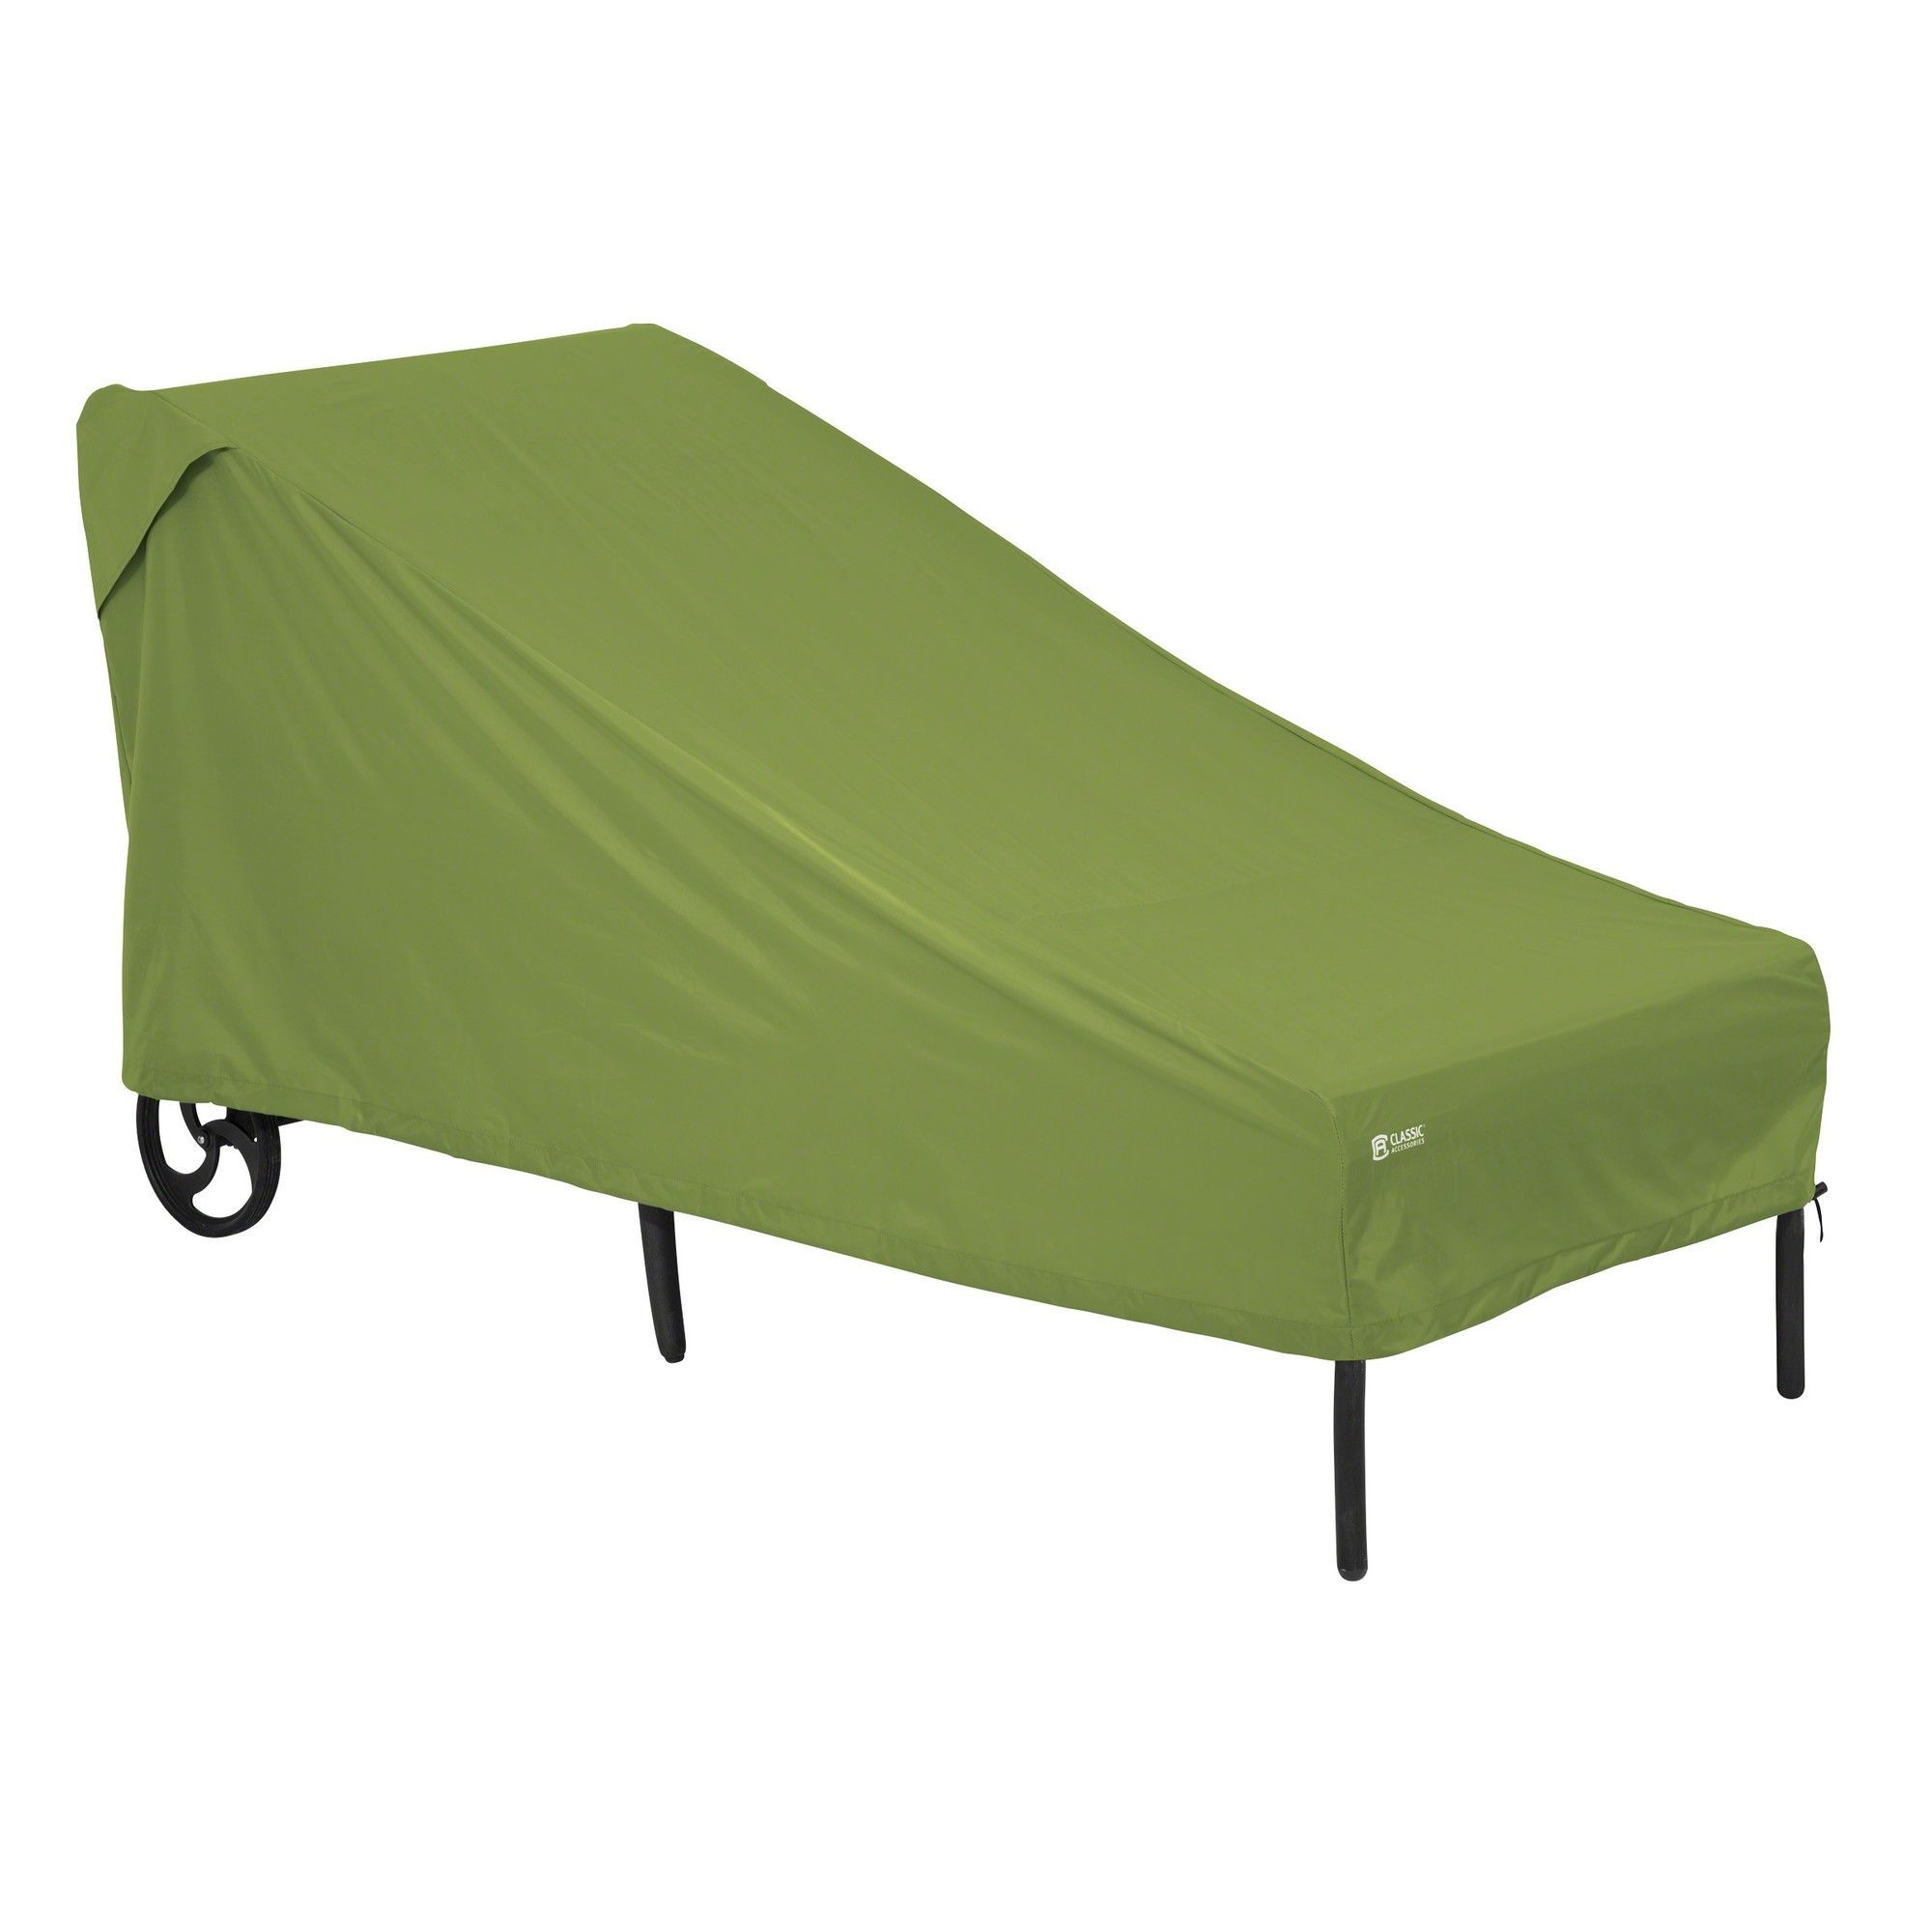 Sodo Patio Chaise Lounge Cover Products Pinterest